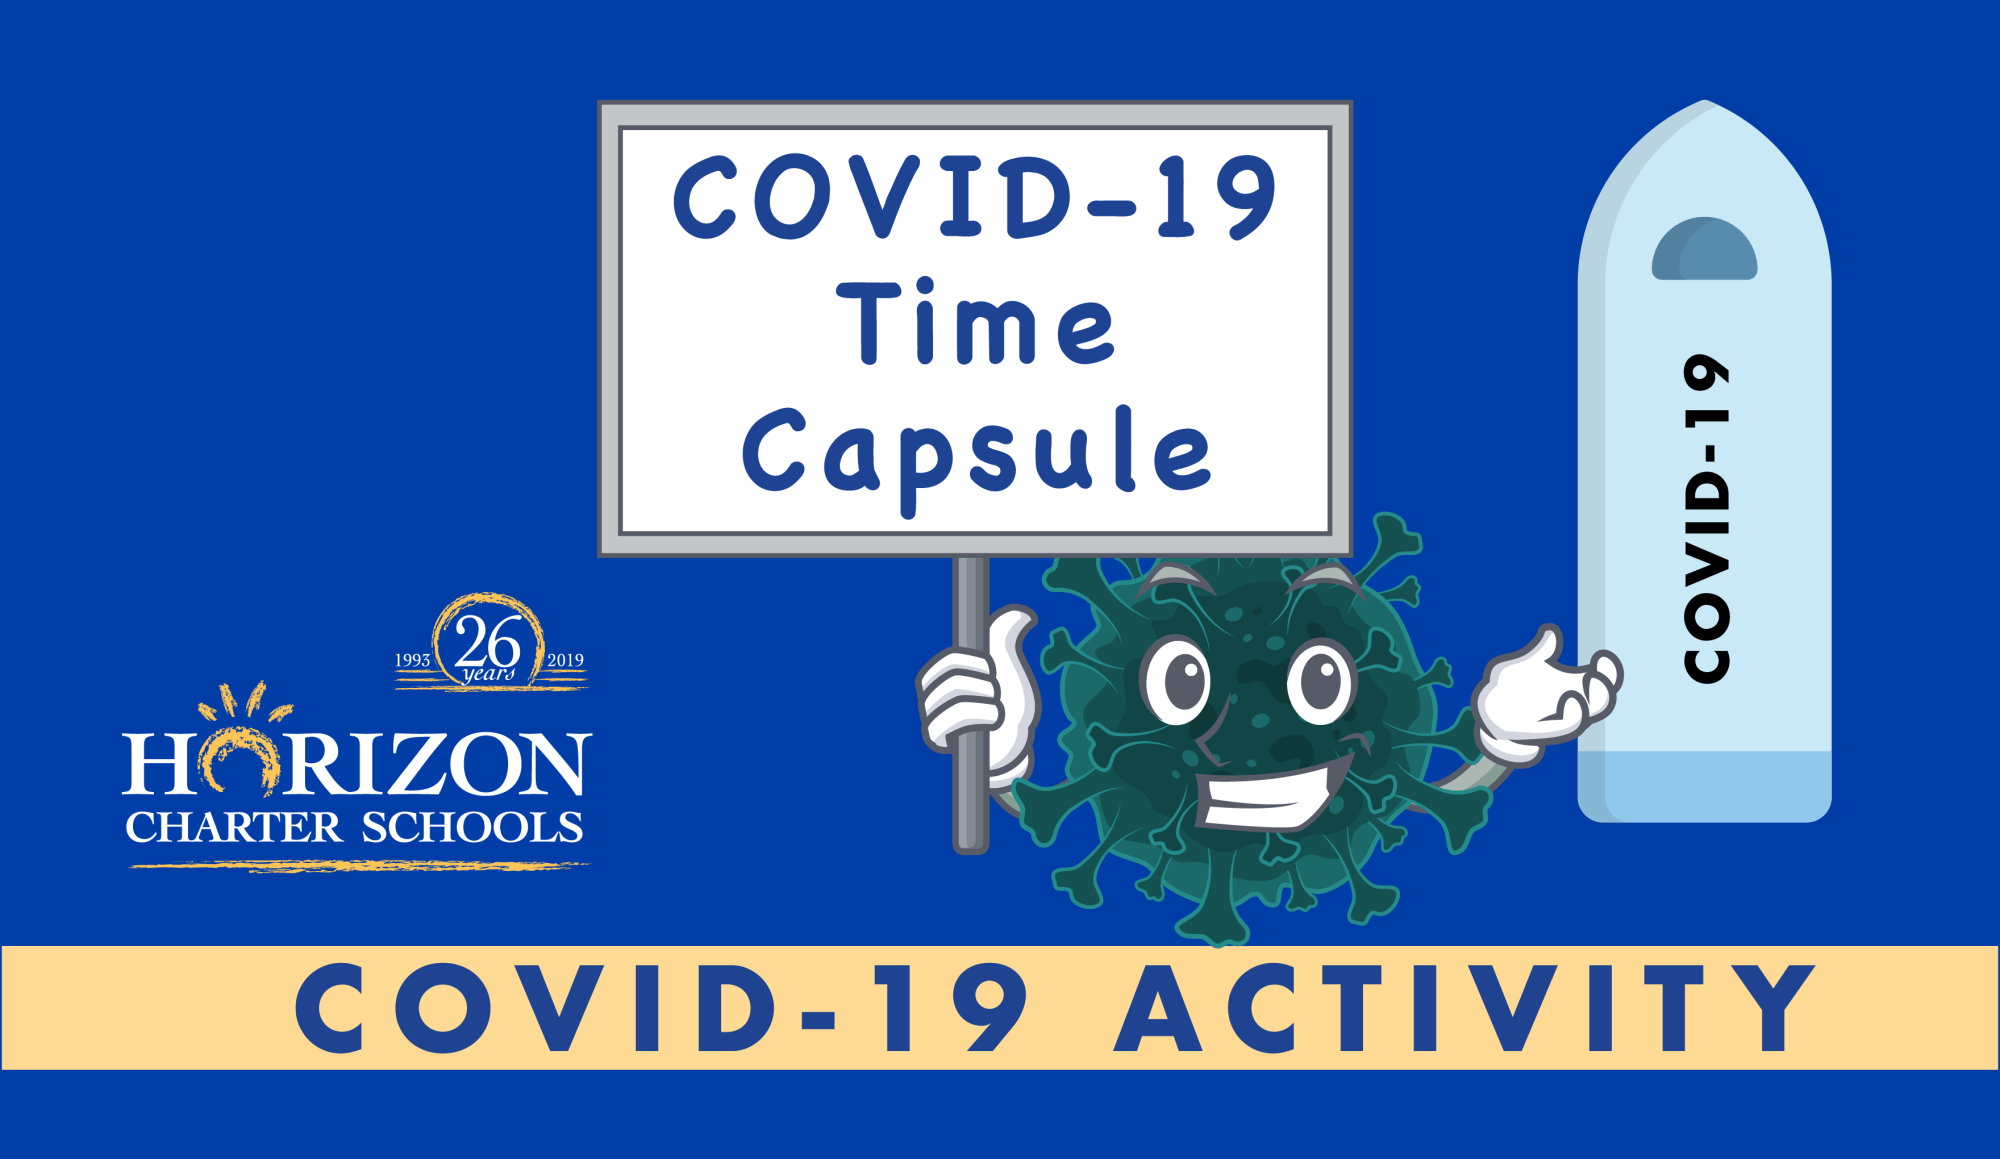 hight resolution of COVID-19 Time Capsule Activity for Home School Students of All Ages    Horizon Charter Schools